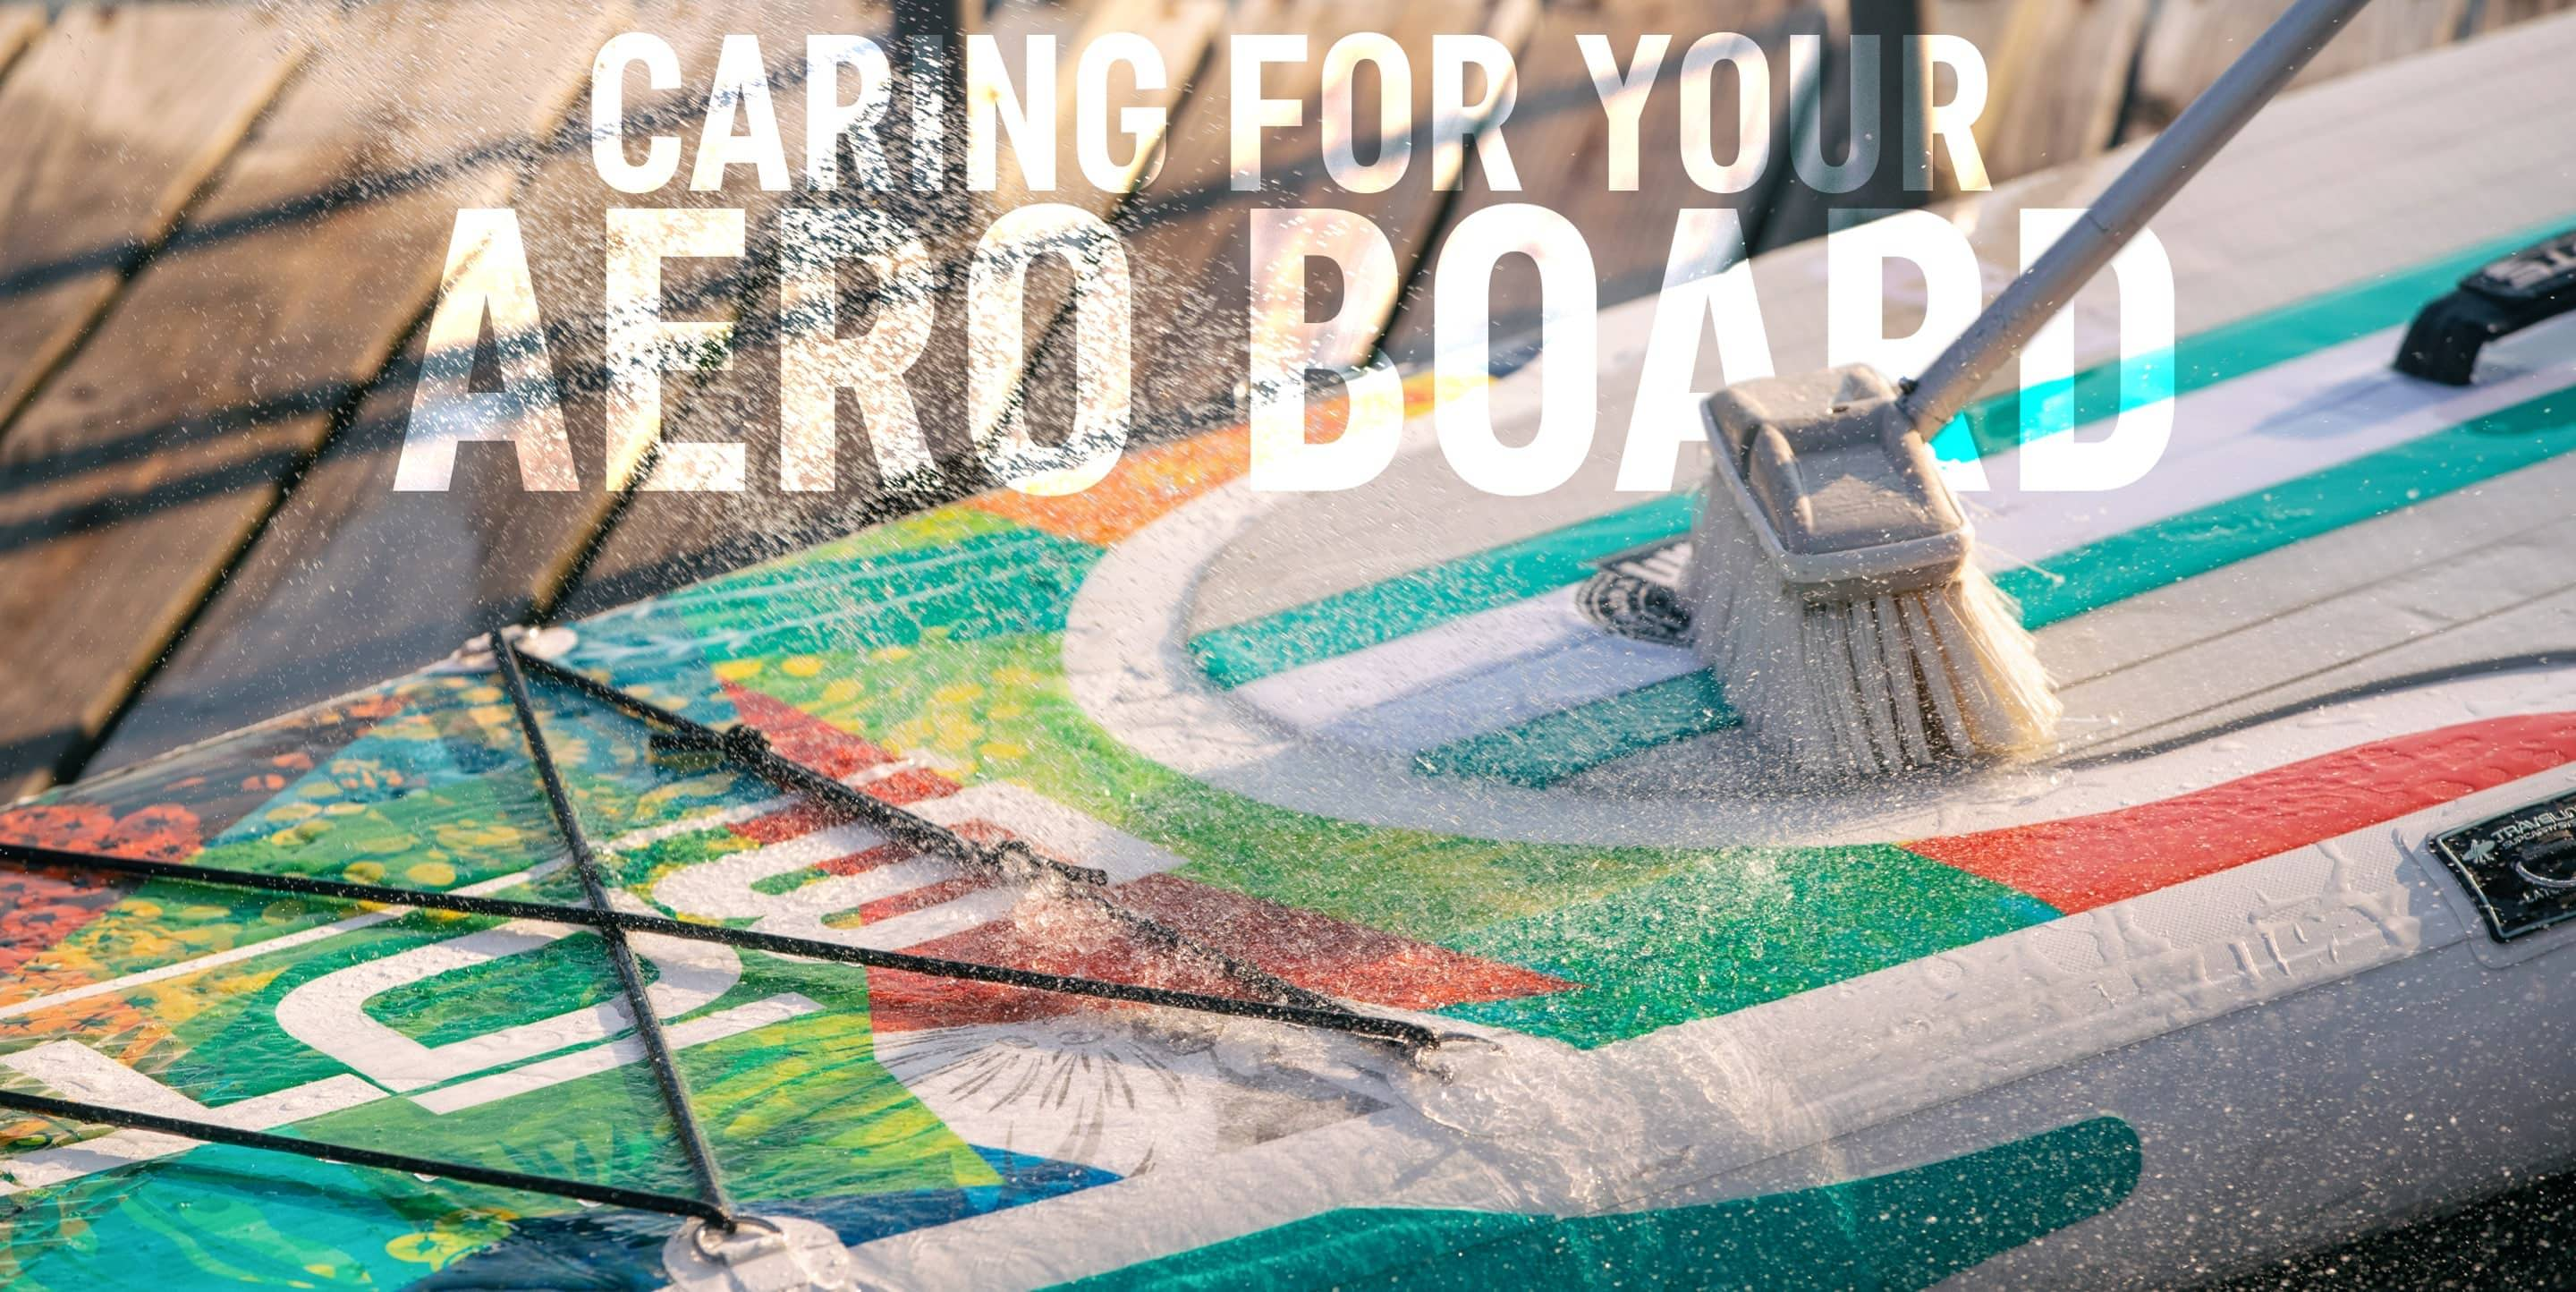 Caring for your Aero Board